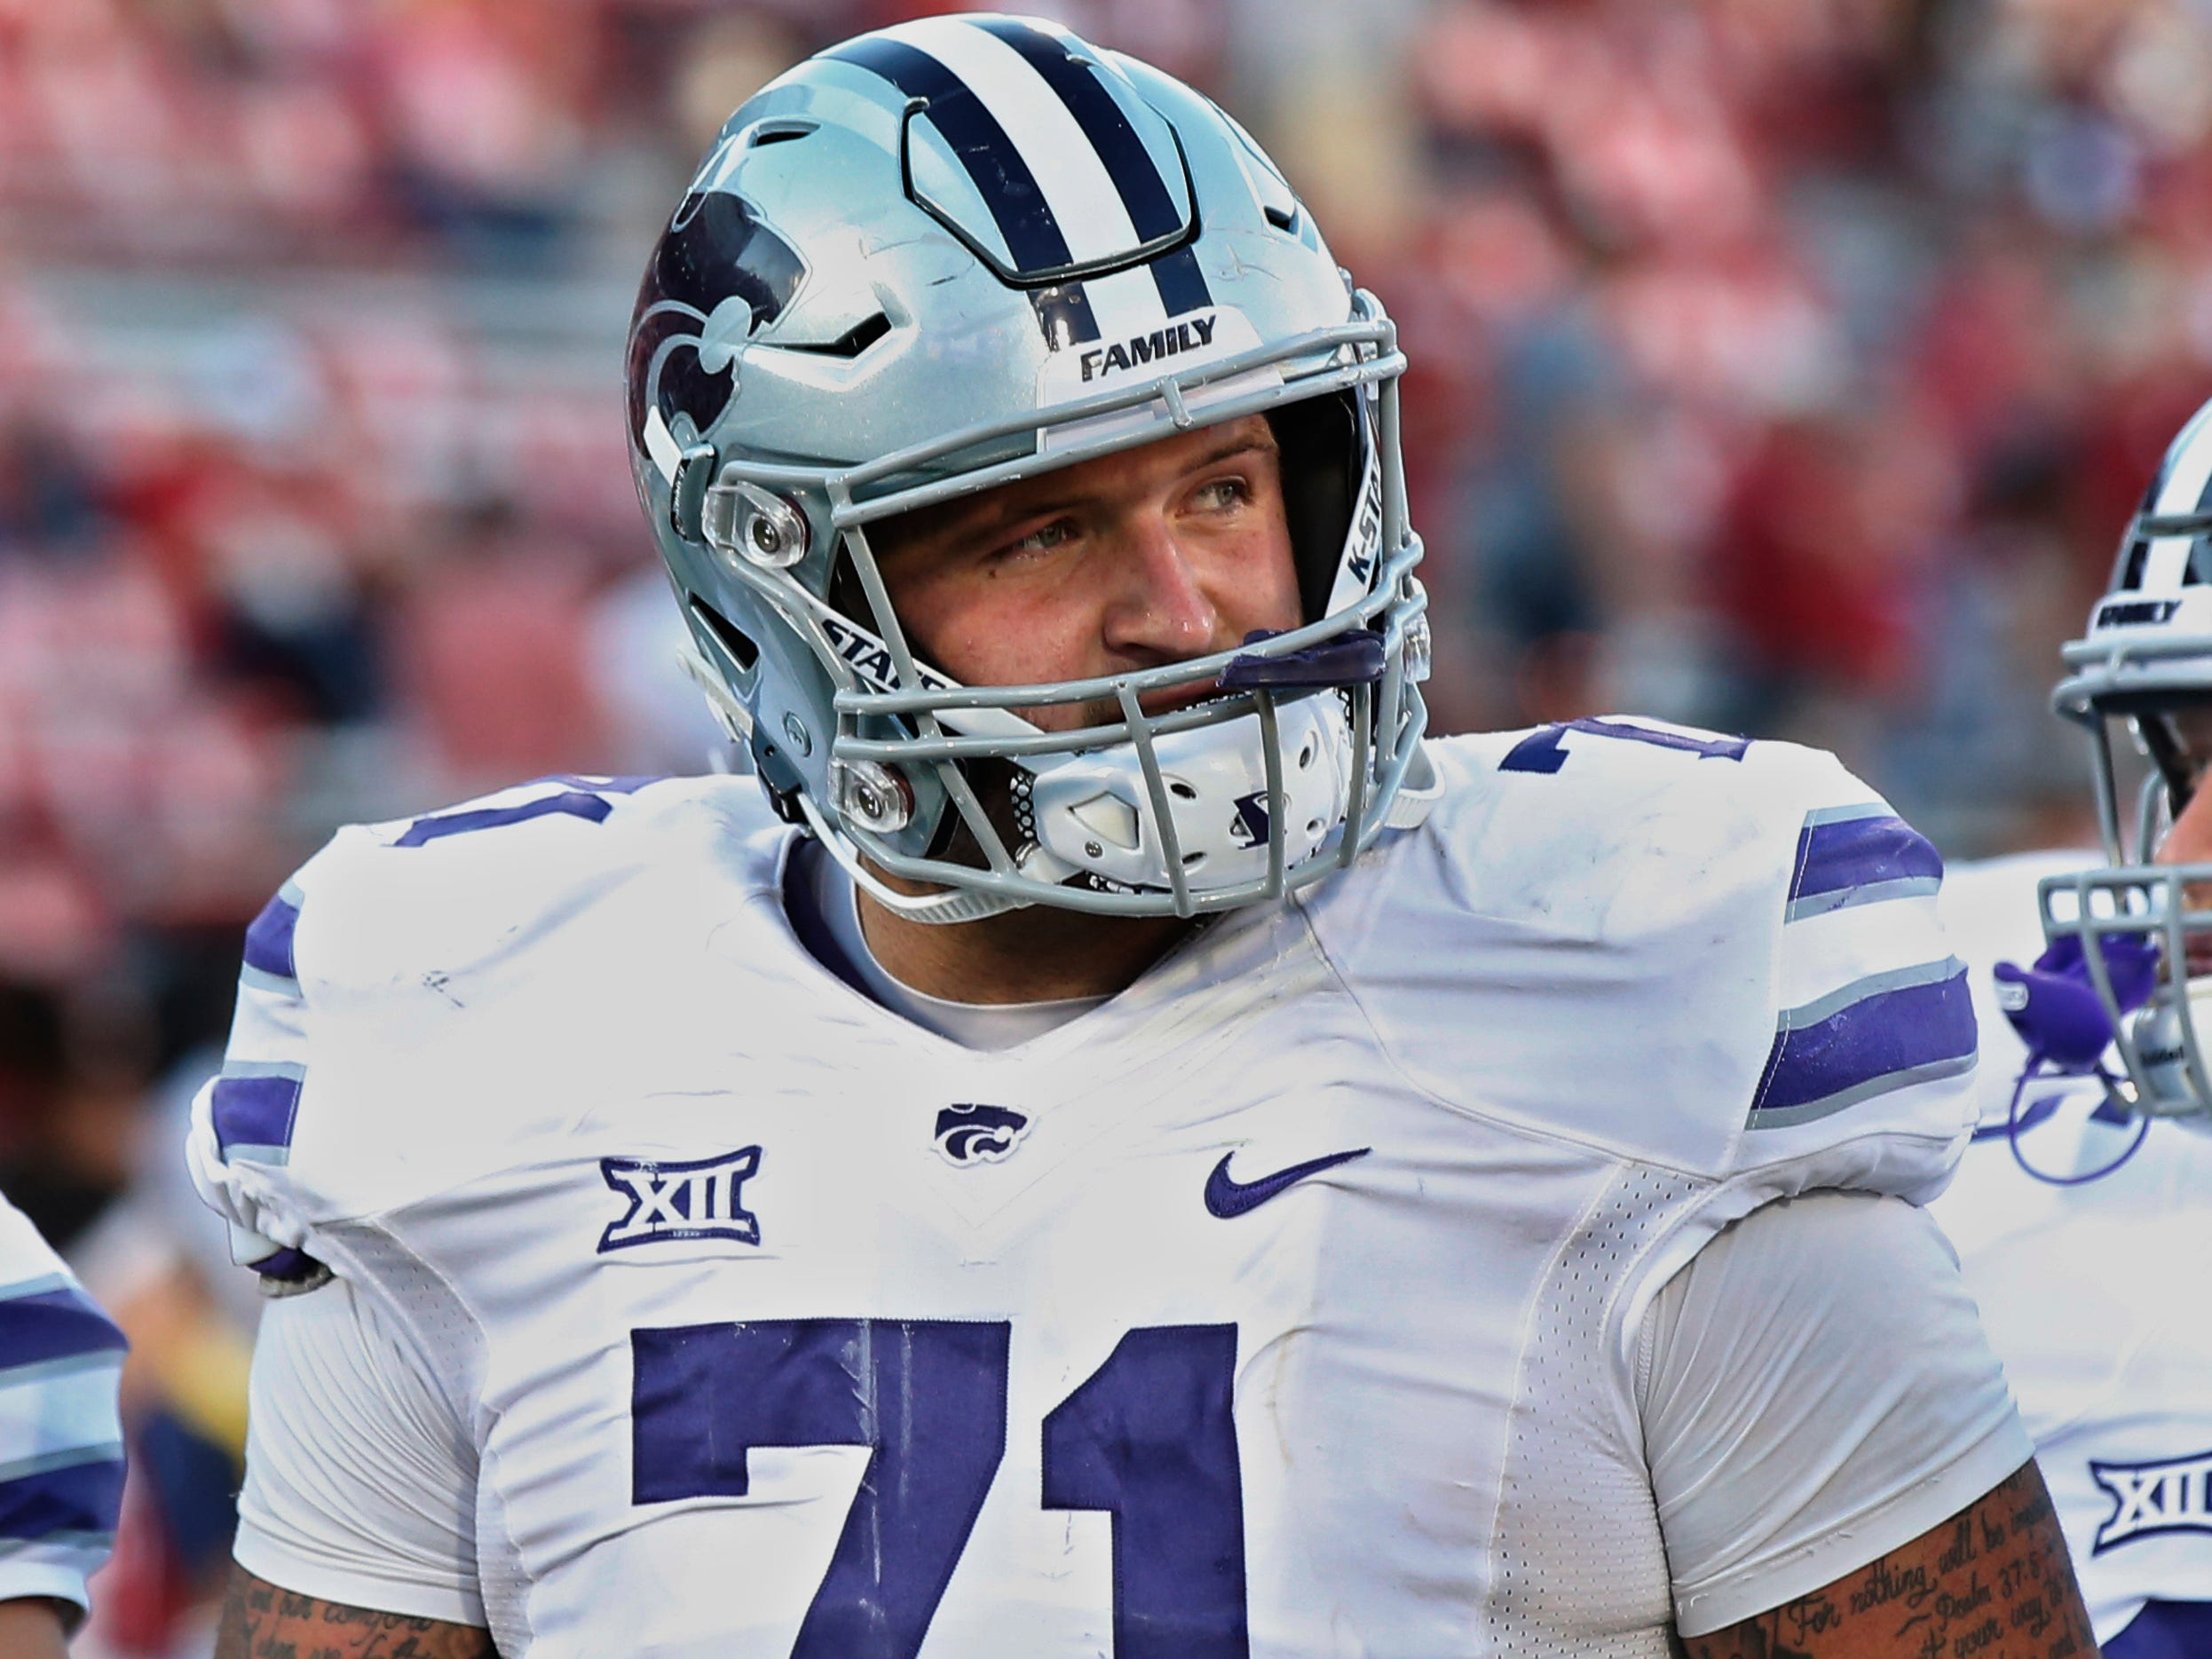 24. Dalton Risner, OL, Kansas State: Another college offensive tackle primed to make a seamless transition an interior spot. Risner possesses strong fundamentals, good technique and has shown the ability to operate well when pulling, making him a good guard candidate for Detroit.